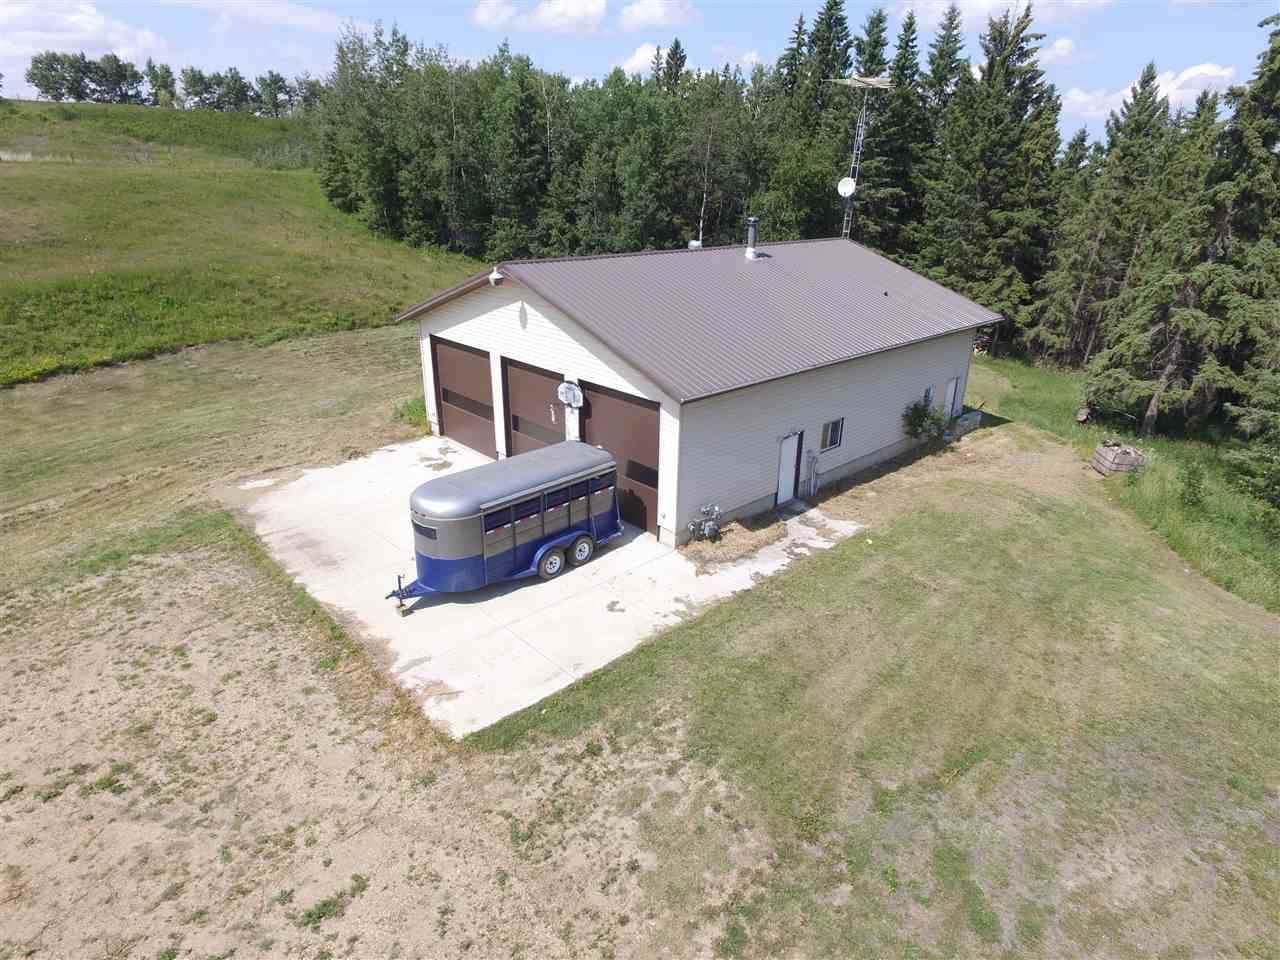 Photo 26: Photos: 462082B Hwy 822: Rural Wetaskiwin County House for sale : MLS®# E4170309